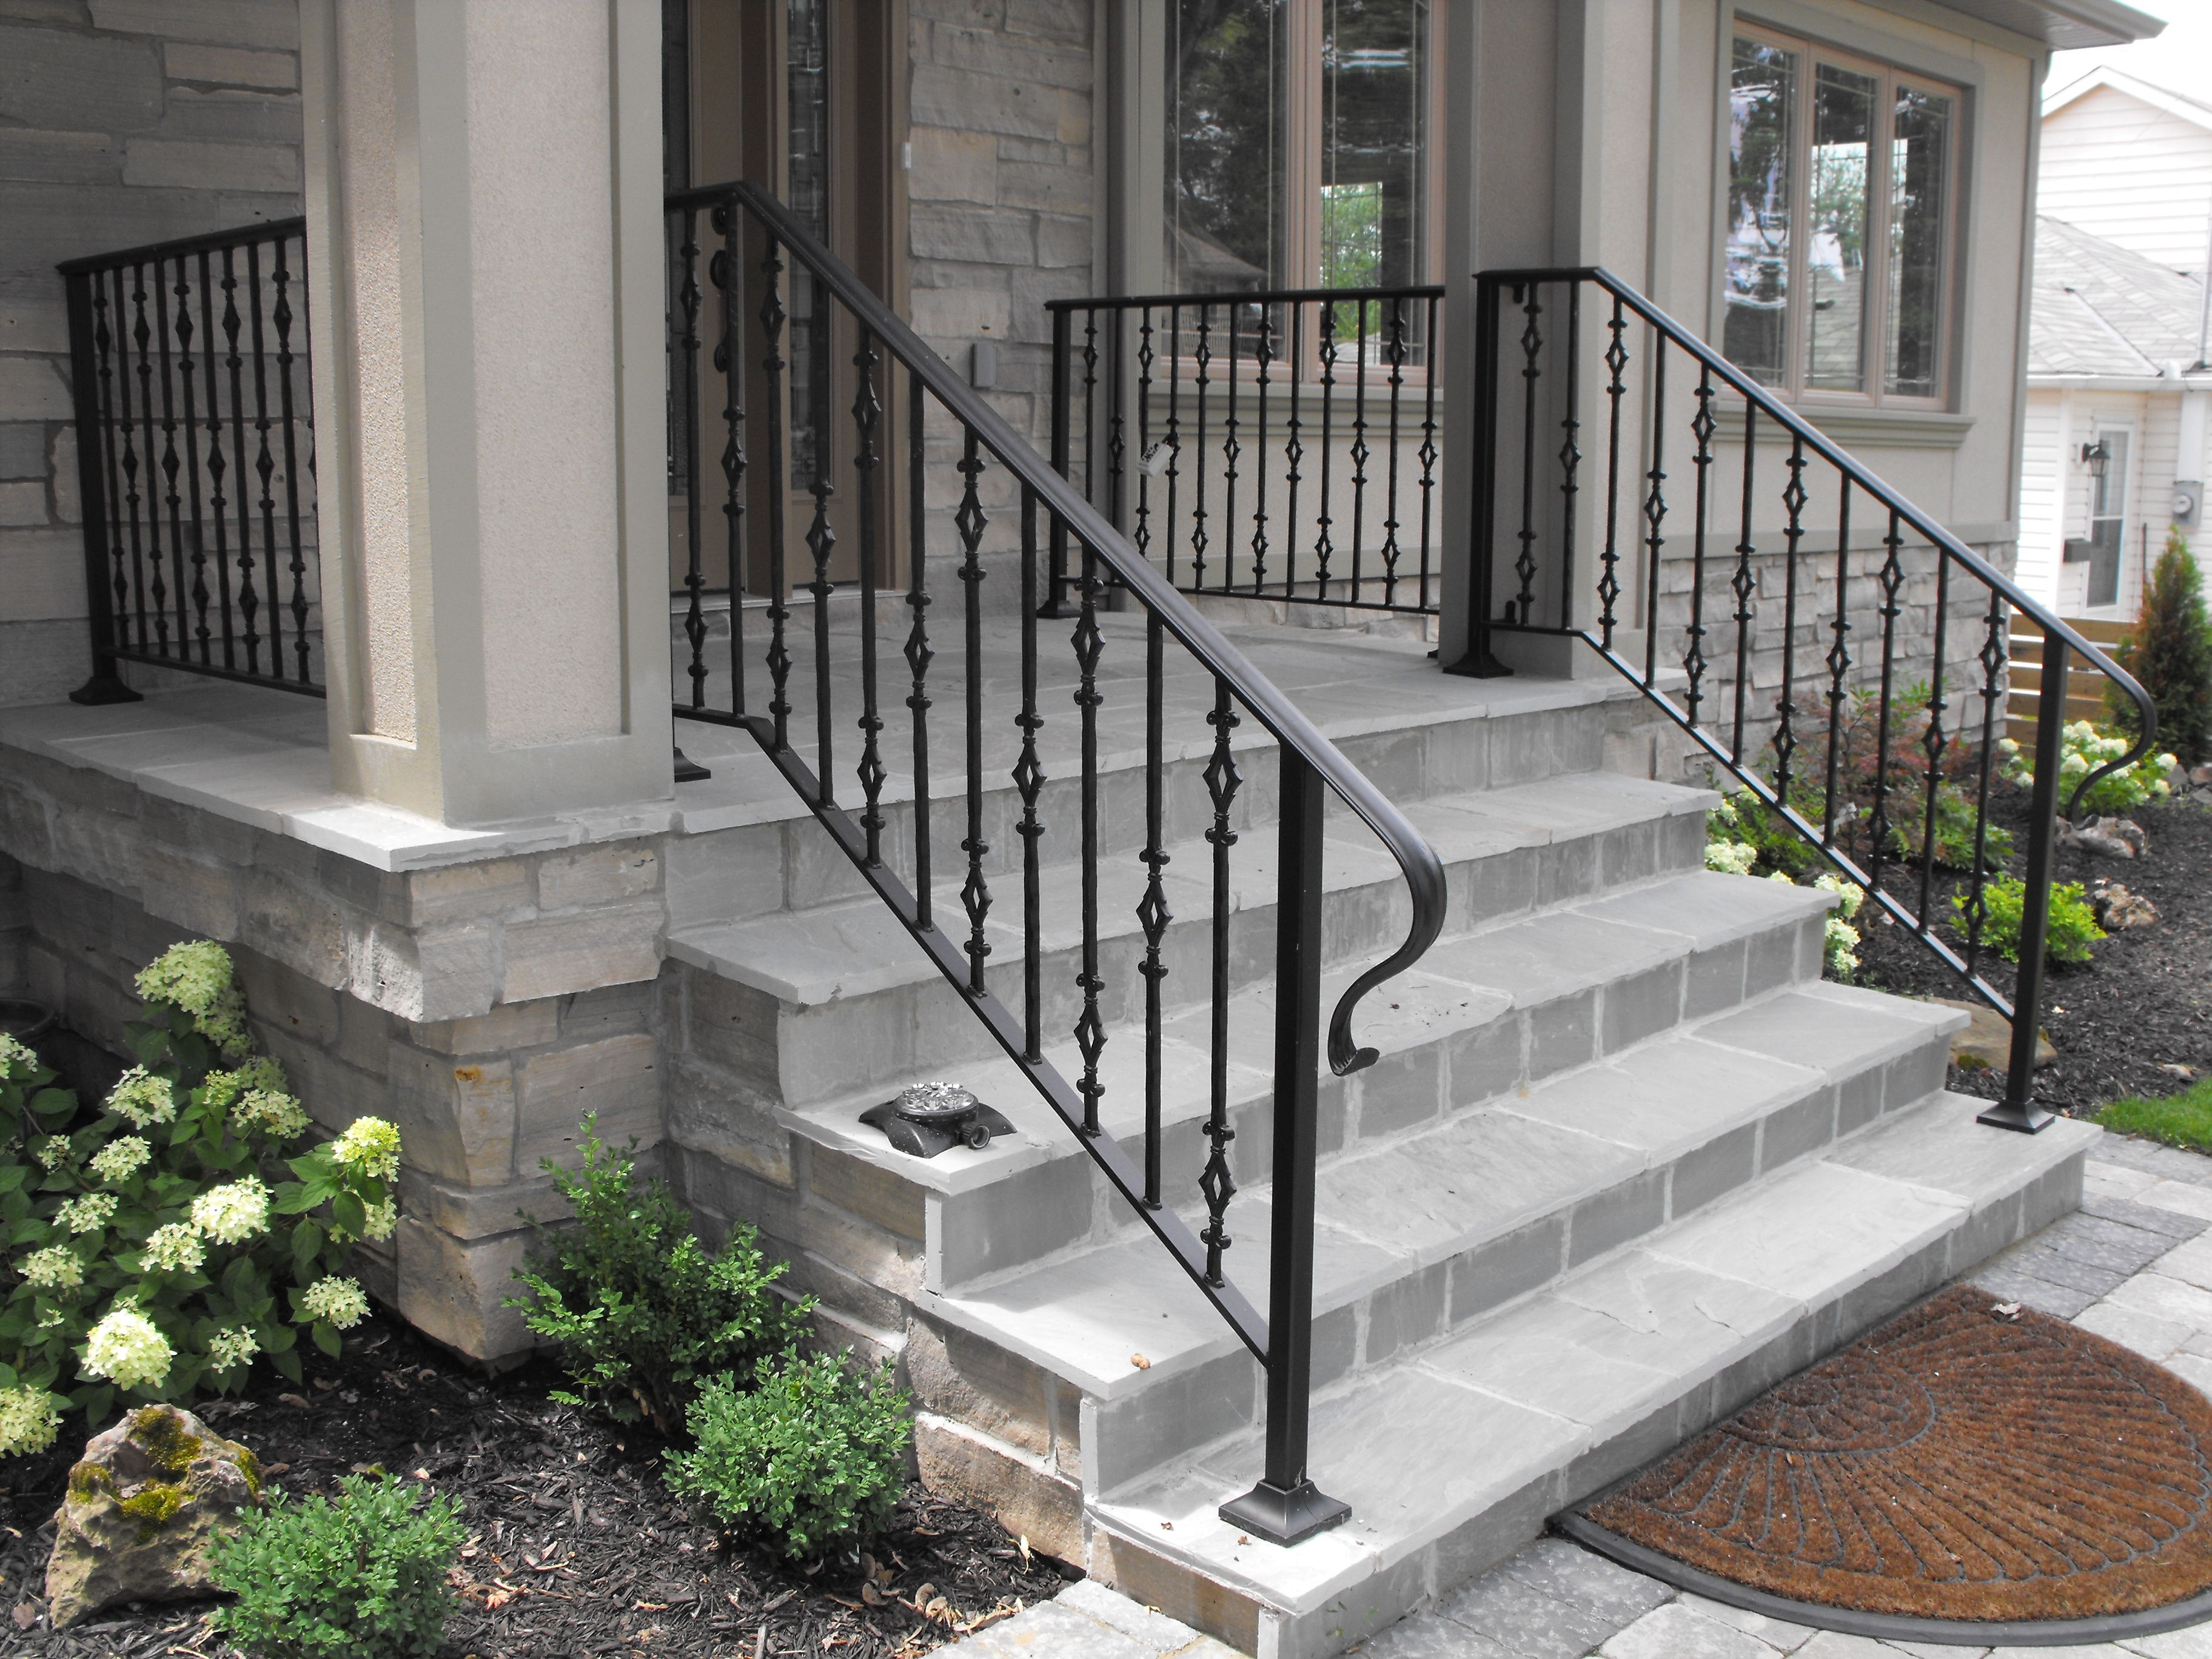 Front Entrance Railing Front Entrance Stair Rail Wrought Iron Porch Railings Railings | Wrought Iron Railings For Outside Steps